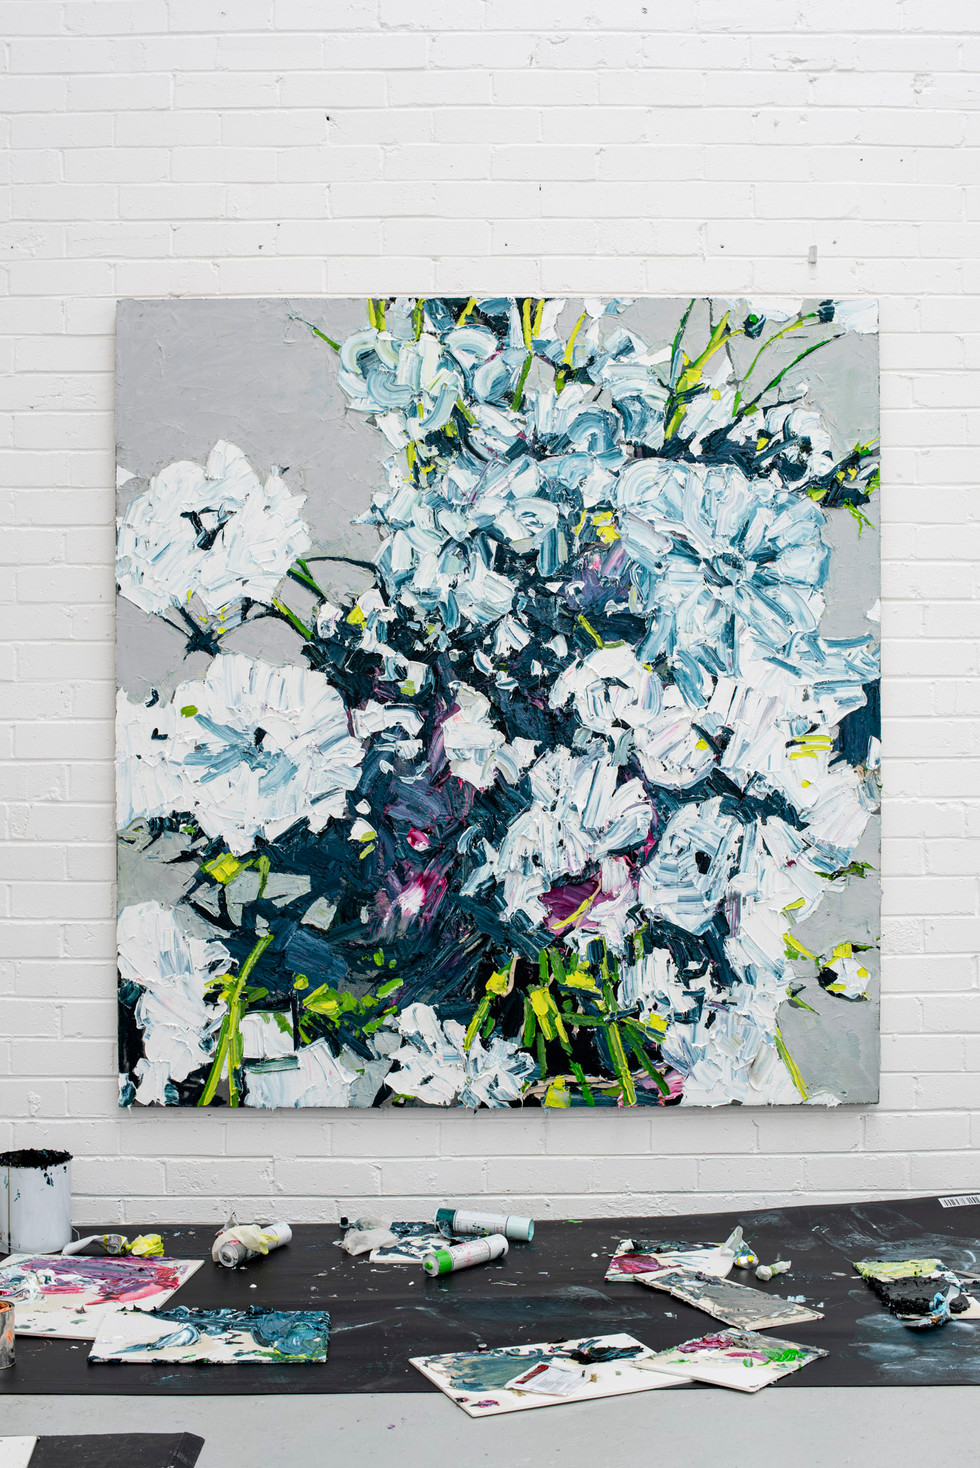 Beauty ain't always a little cute coloured flower. Beauty is anything where people be like, 'Damn' 180x170cm Oil on linen over Dibond